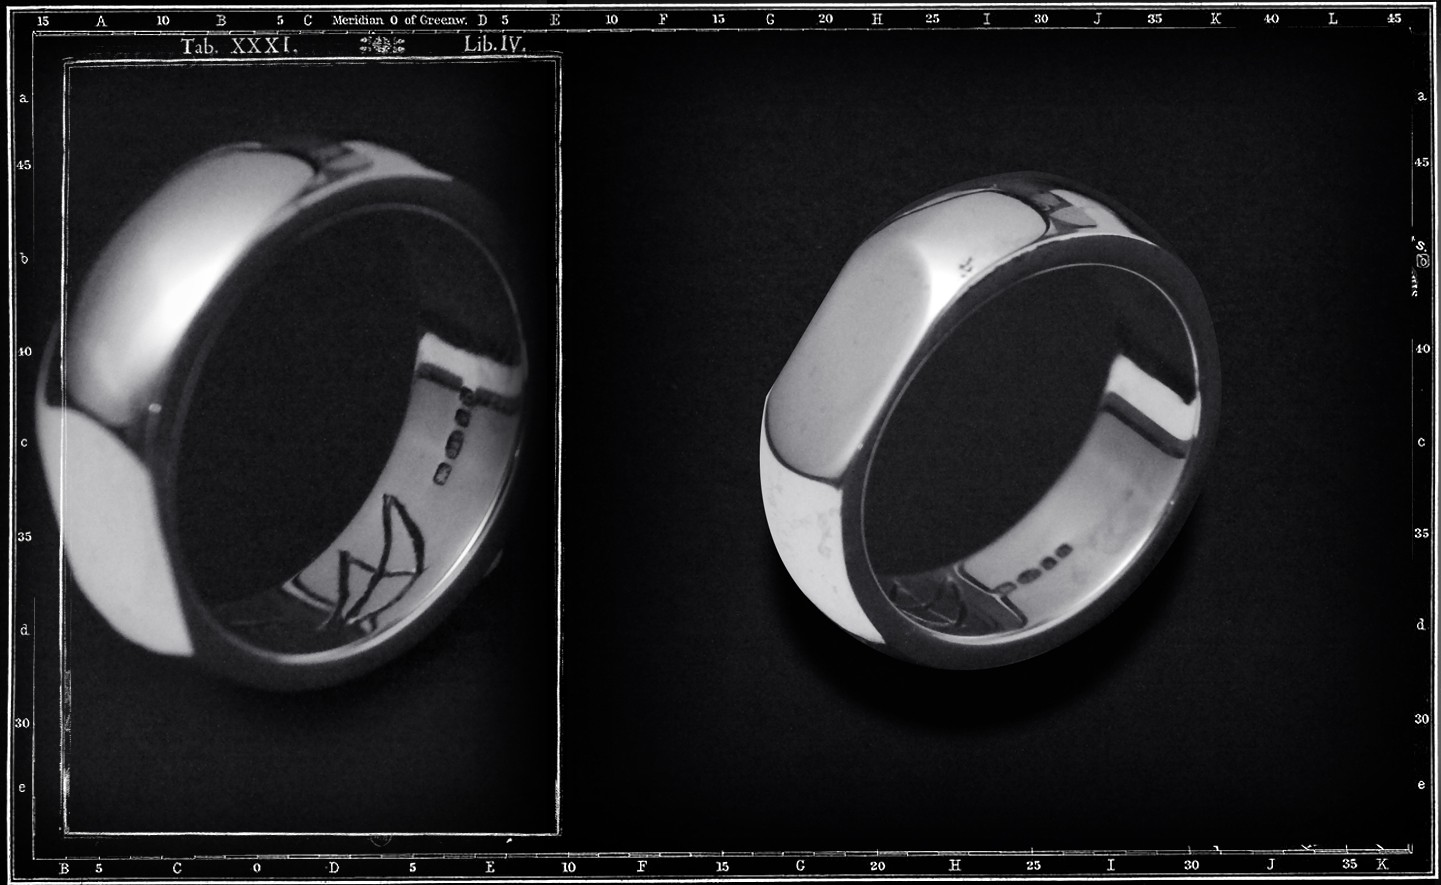 FLAT SIDED PLAIN BAND RING - SMALL / JP19 ONLY